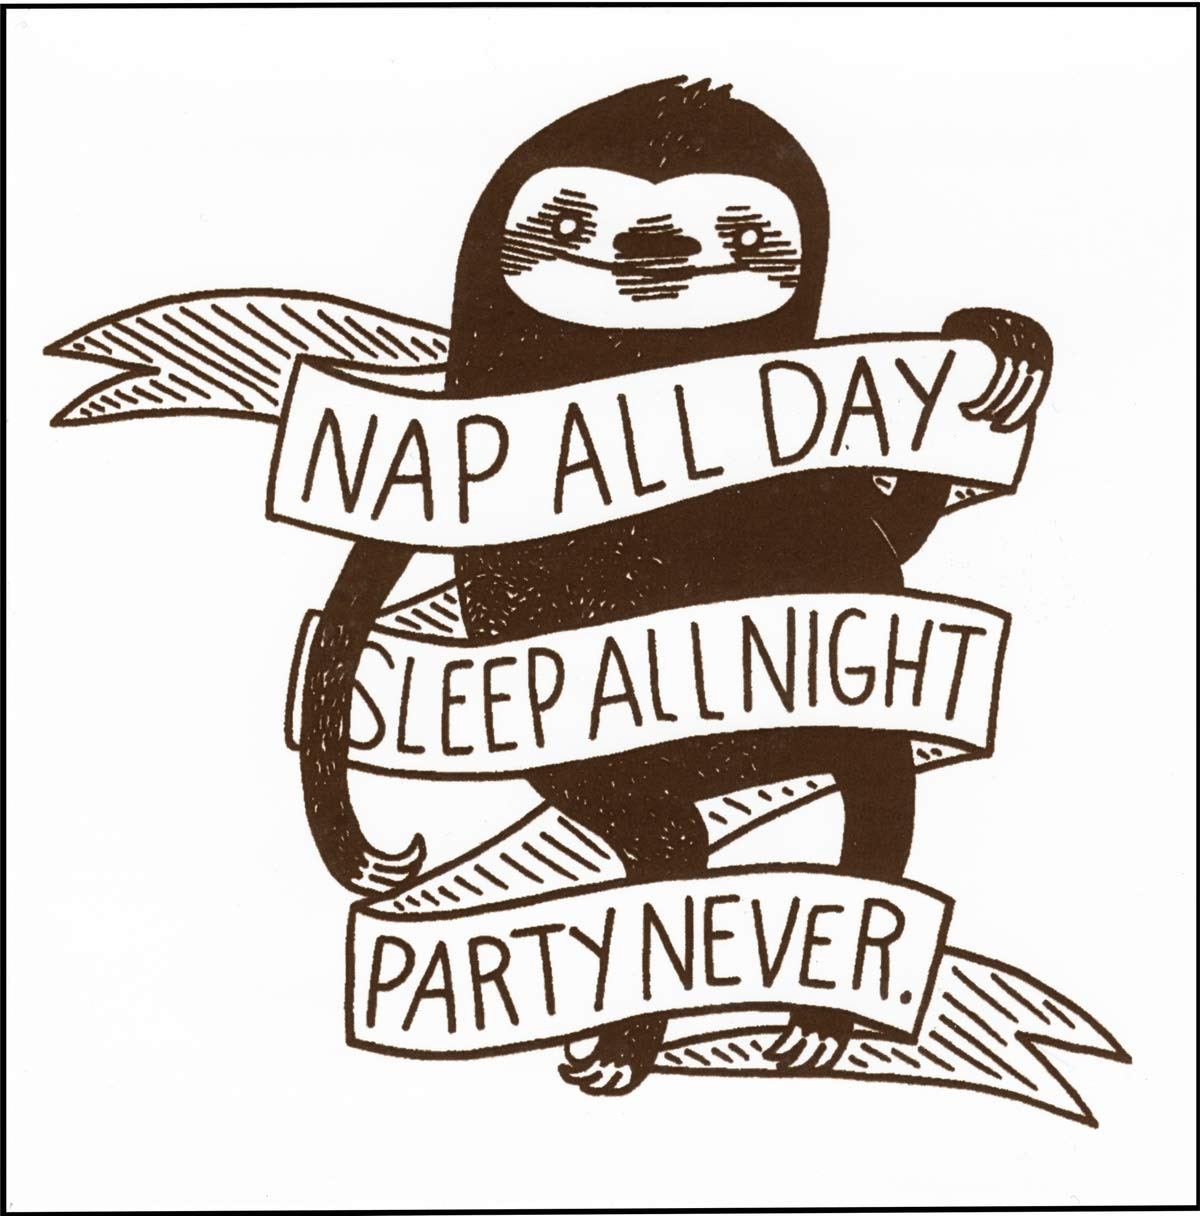 Sleep All Night Sloth Vinyl Sticker Square Deal Recordings /& Supplies Nap All Day Party Never